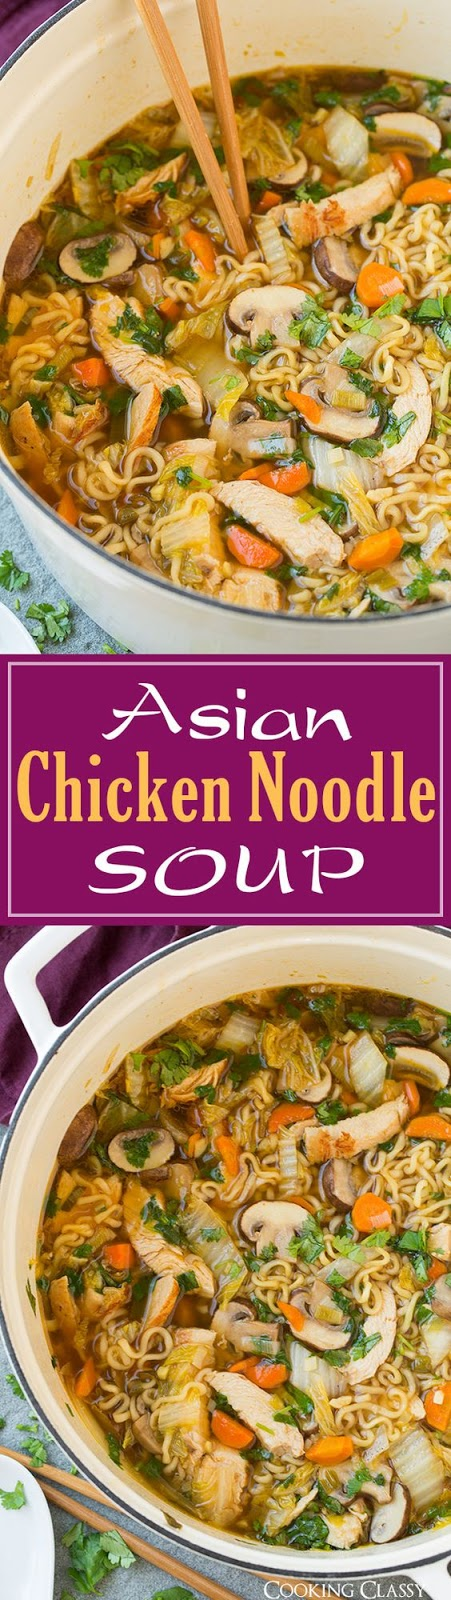 ★★★★☆ 2261 ratings | Asian Chicken Noodle Soup  #HEALTHYFOOD #EASYRECIPES #DINNER #LAUCH #DELICIOUS #EASY #HOLIDAYS #RECIPE #DESSERTS #SPECIALDIET #WORLDCUISINE #CAKE #APPETIZERS #HEALTHYRECIPES #DRINKS #COOKINGMETHOD #ITALIANRECIPES #MEAT #VEGANRECIPES #COOKIES #PASTA #FRUIT #SALAD #SOUPAPPETIZERS #NONALCOHOLICDRINKS #MEALPLANNING #VEGETABLES #SOUP #PASTRY #CHOCOLATE #DAIRY #ALCOHOLICDRINKS #BULGURSALAD #BAKING #SNACKS #BEEFRECIPES #MEATAPPETIZERS #MEXICANRECIPES #BREAD #ASIANRECIPES #SEAFOODAPPETIZERS #MUFFINS #BREAKFASTANDBRUNCH #CONDIMENTS #CUPCAKES #CHEESE #CHICKENRECIPES #PIE #COFFEE #NOBAKEDESSERTS #HEALTHYSNACKS #SEAFOOD #GRAIN #LUNCHESDINNERS #MEXICAN #QUICKBREAD #LIQUOR